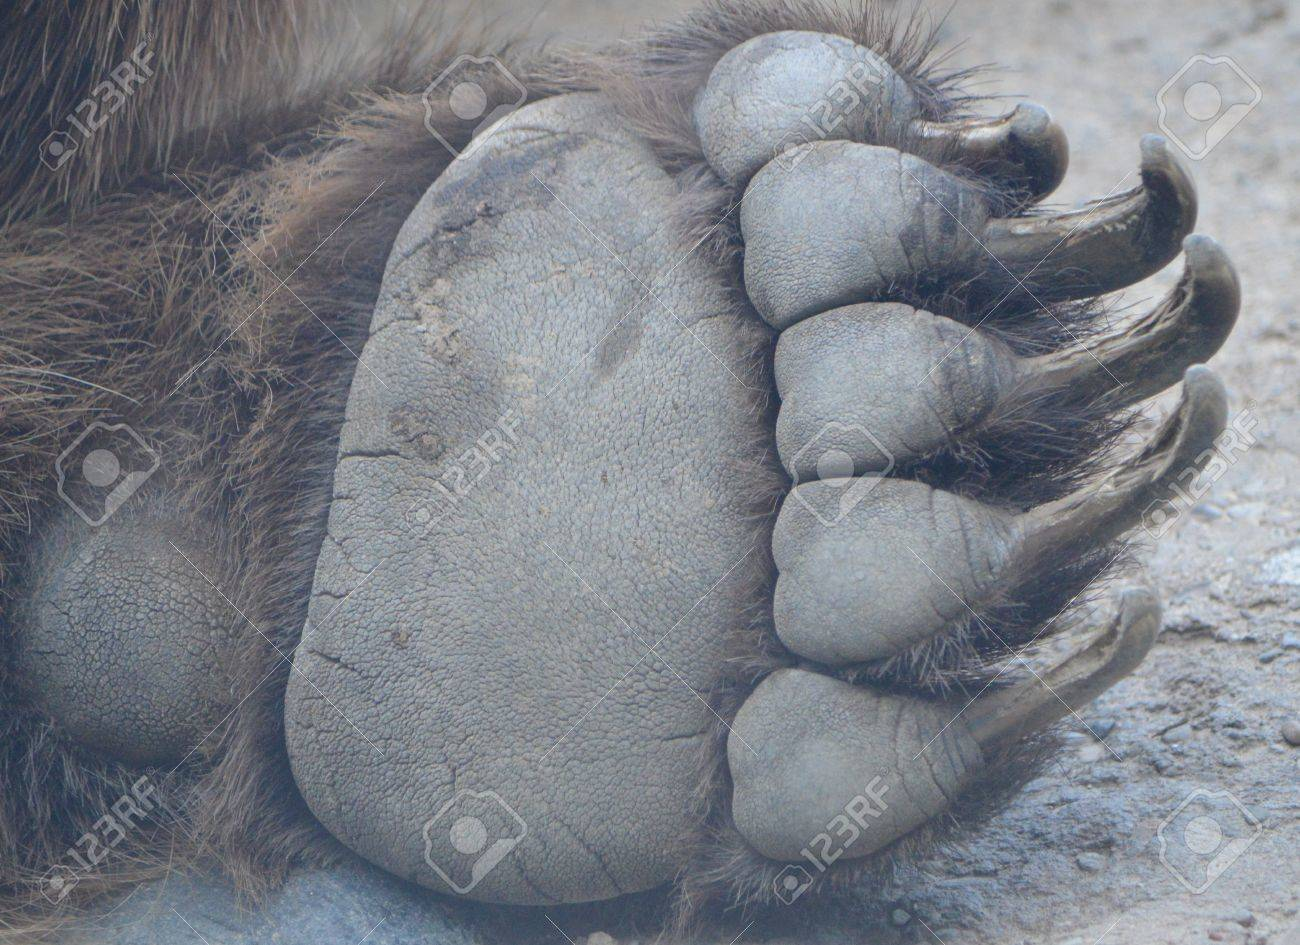 https://previews.123rf.com/images/dnabuckeye/dnabuckeye1609/dnabuckeye160900004/62118265-bear-paw.jpg